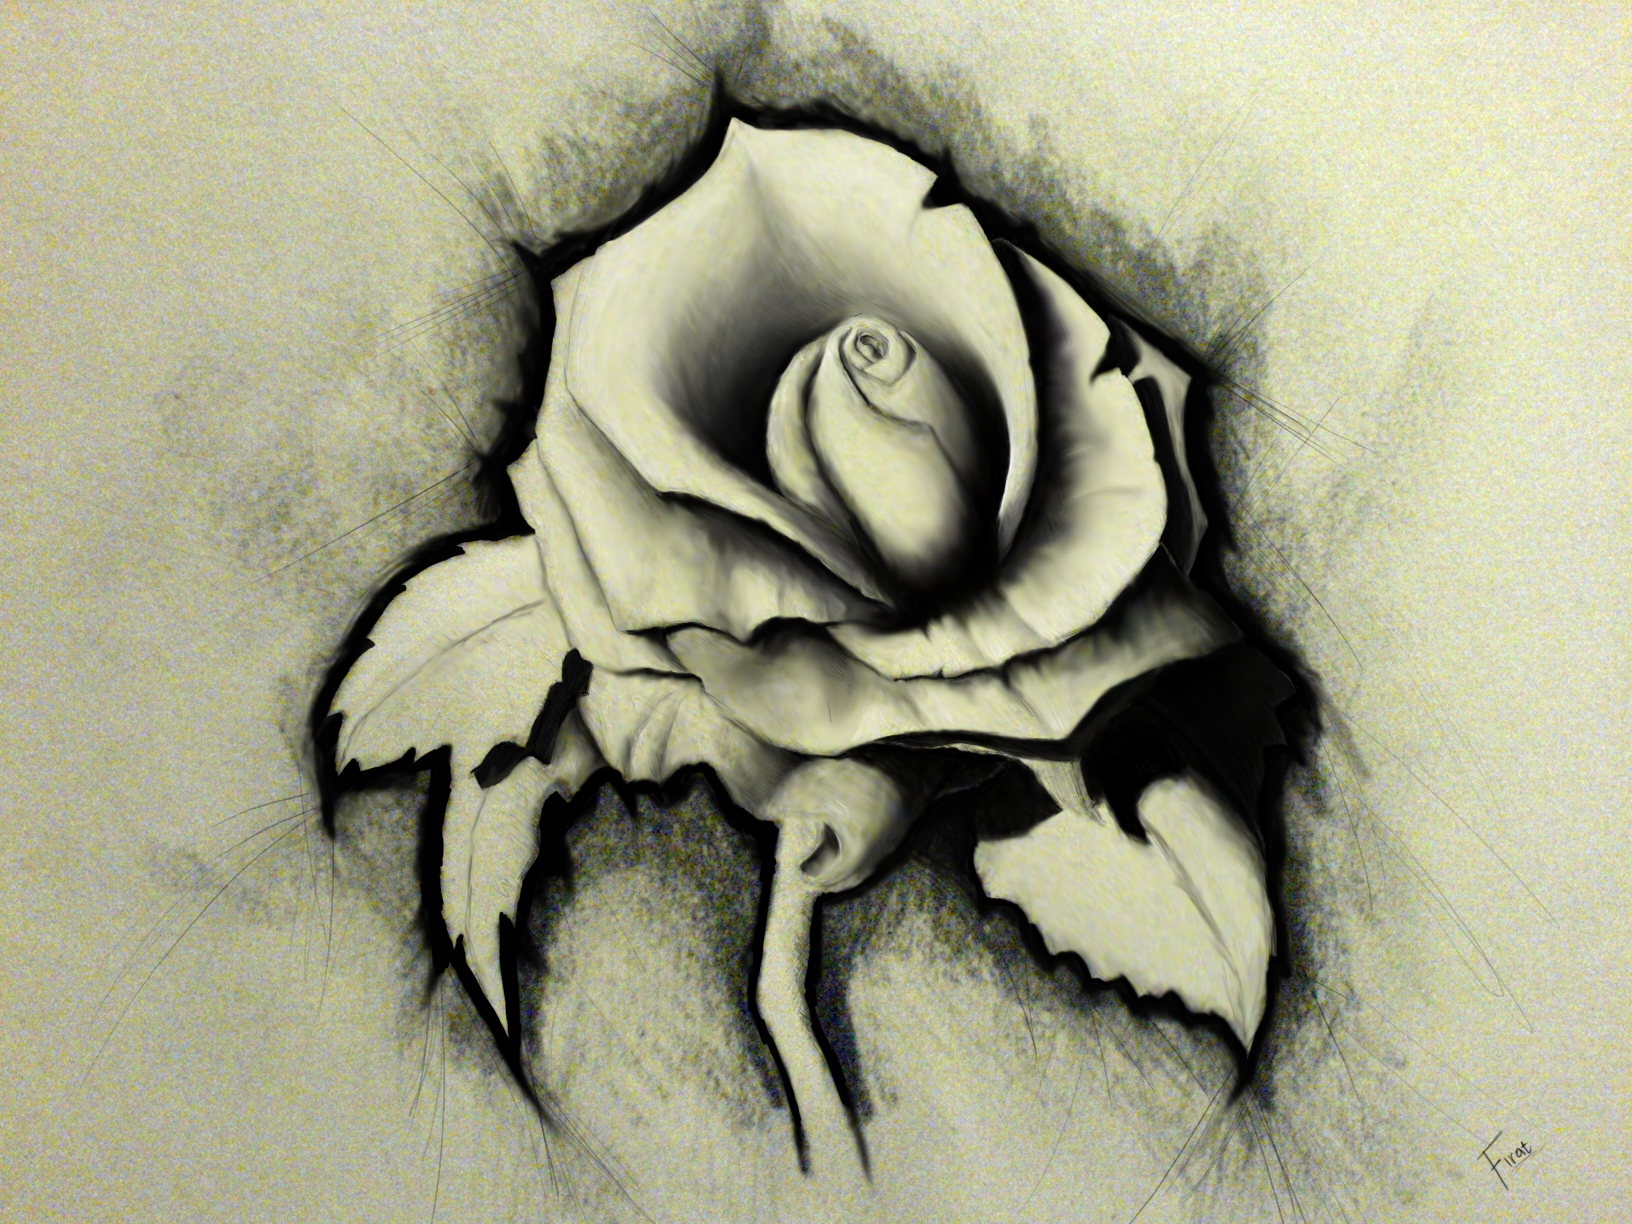 Artistic - Flower  - Artistic - Rose - White - Art - Drawing Wallpaper